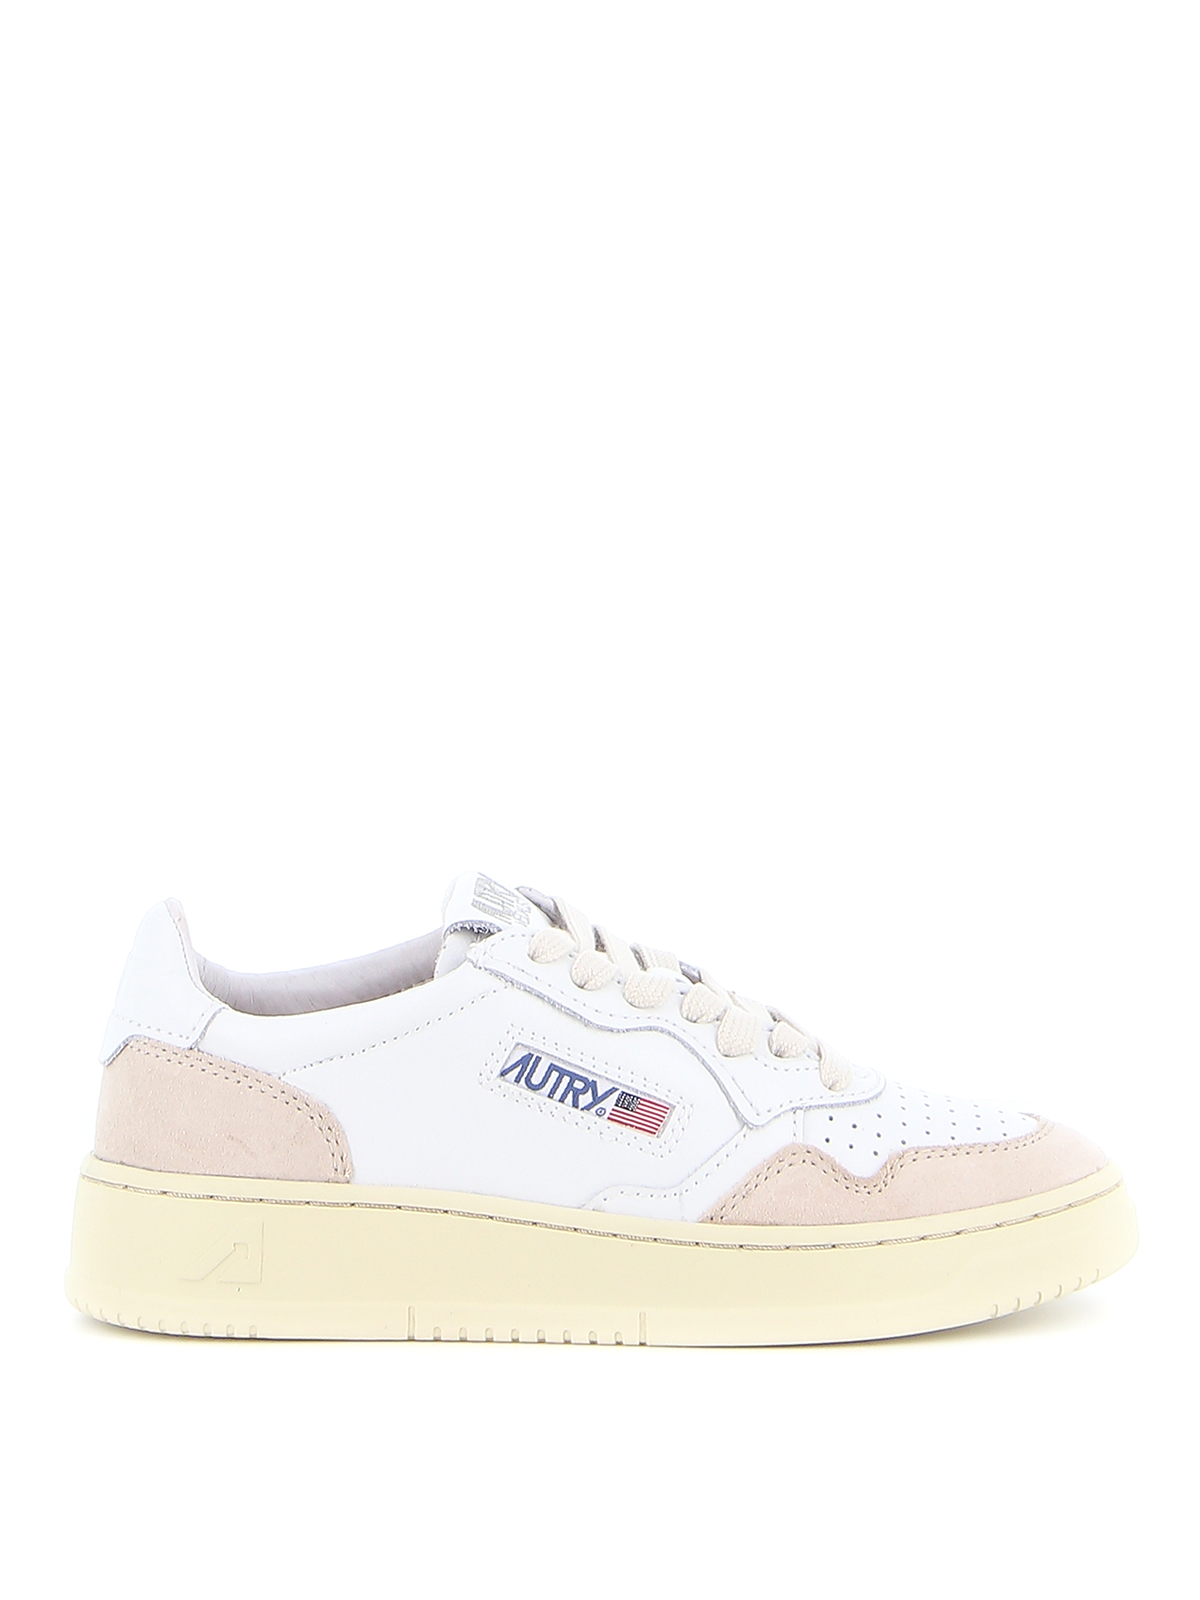 Picture of Autry   Autry 01 Low Leather Suede